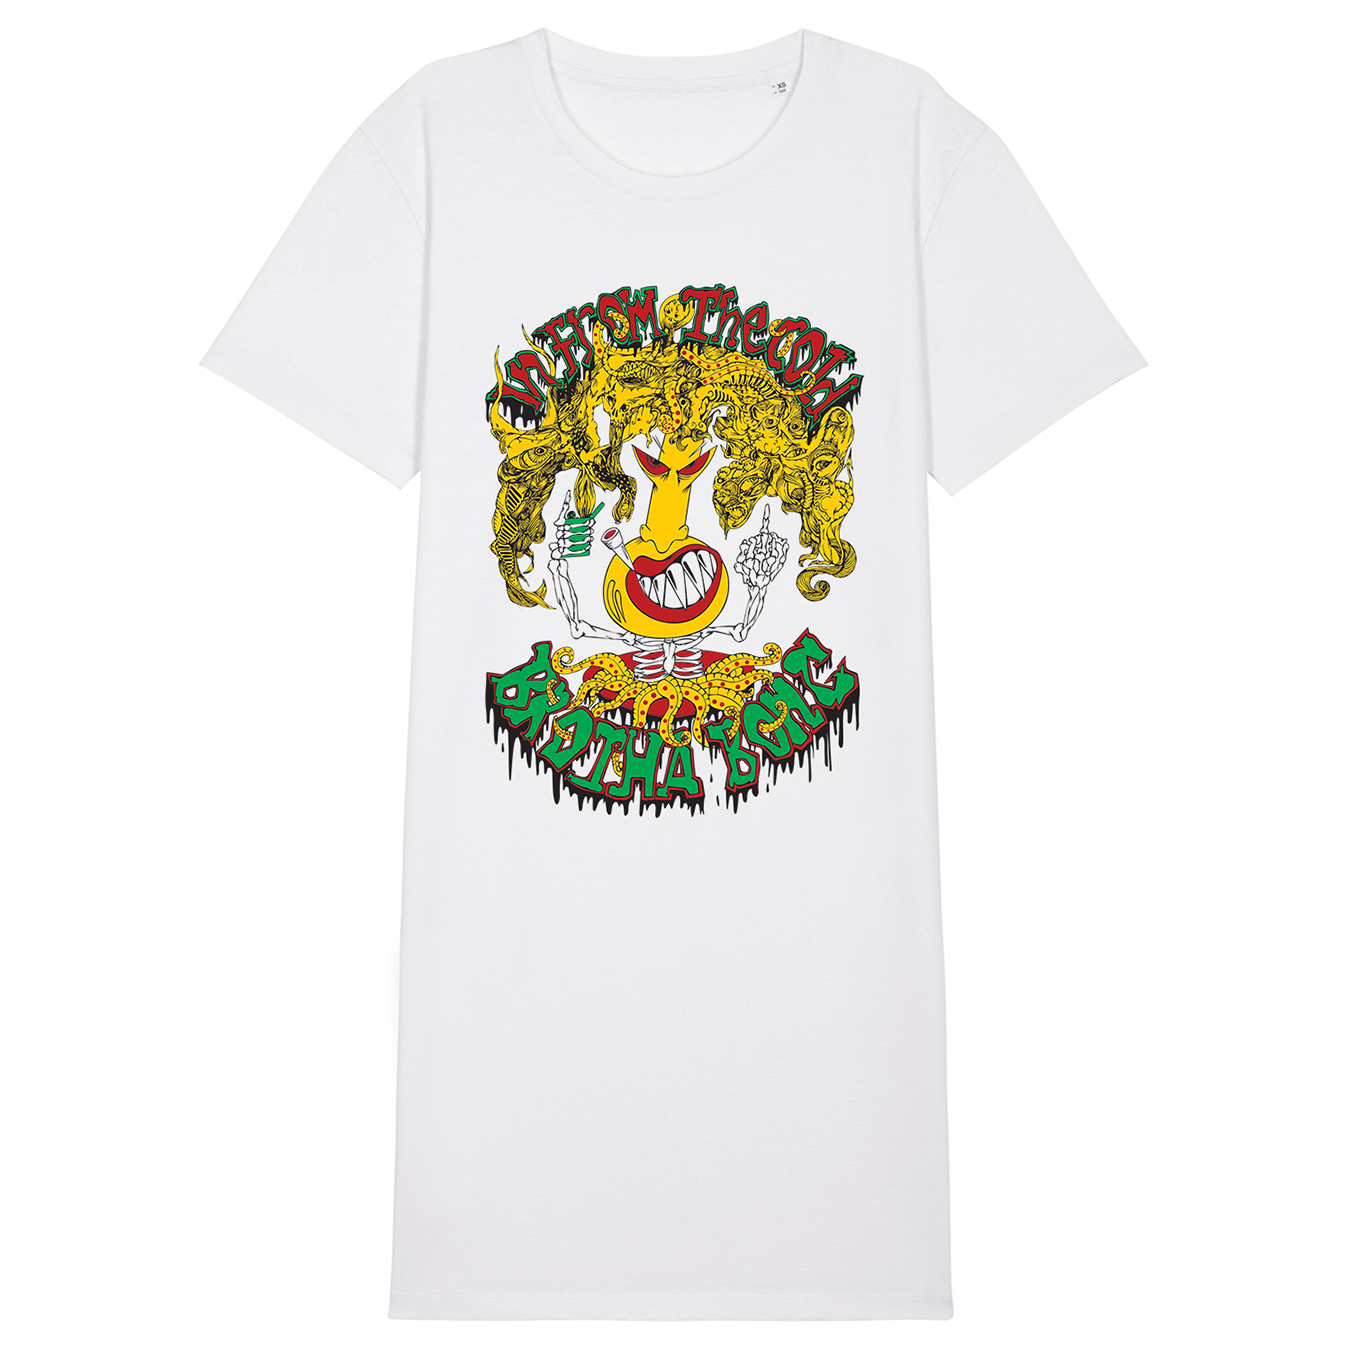 IN FROM THE COLD - Brotha Bong - T-Shirt Dress